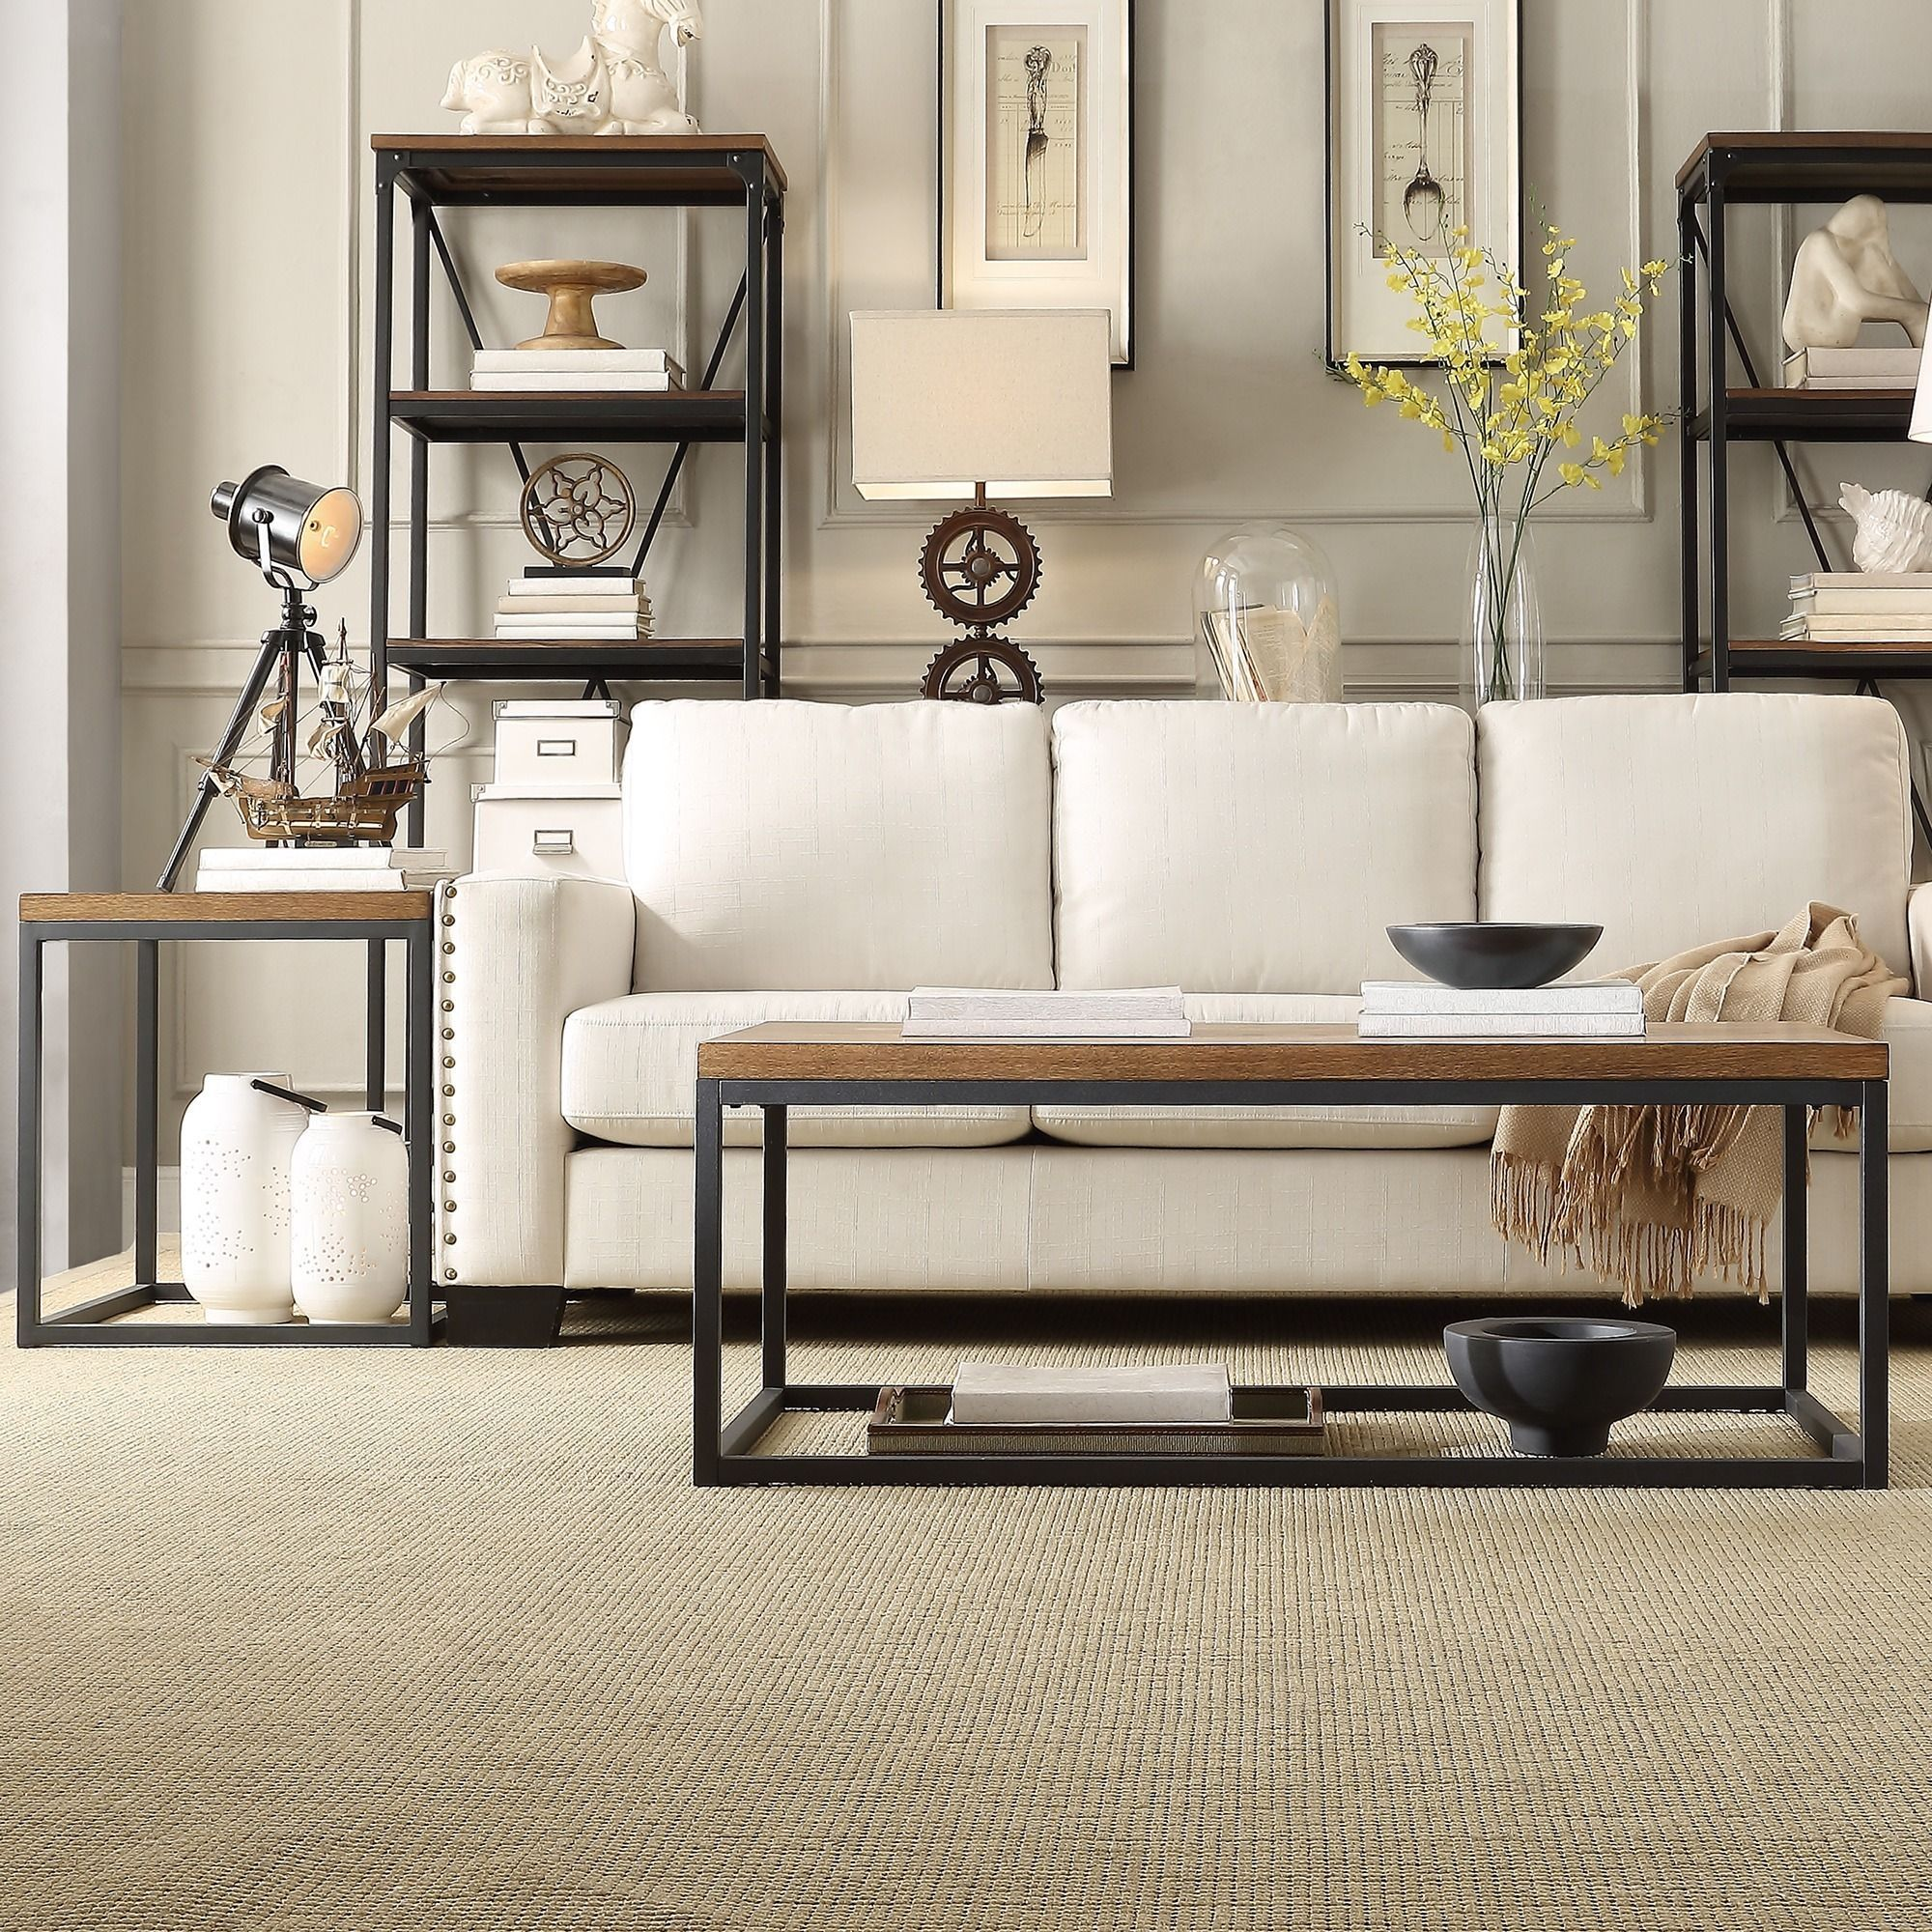 Creating A Rustic Living Room Decor: Create An Aura Of Industrial Chic In Your Living Room When